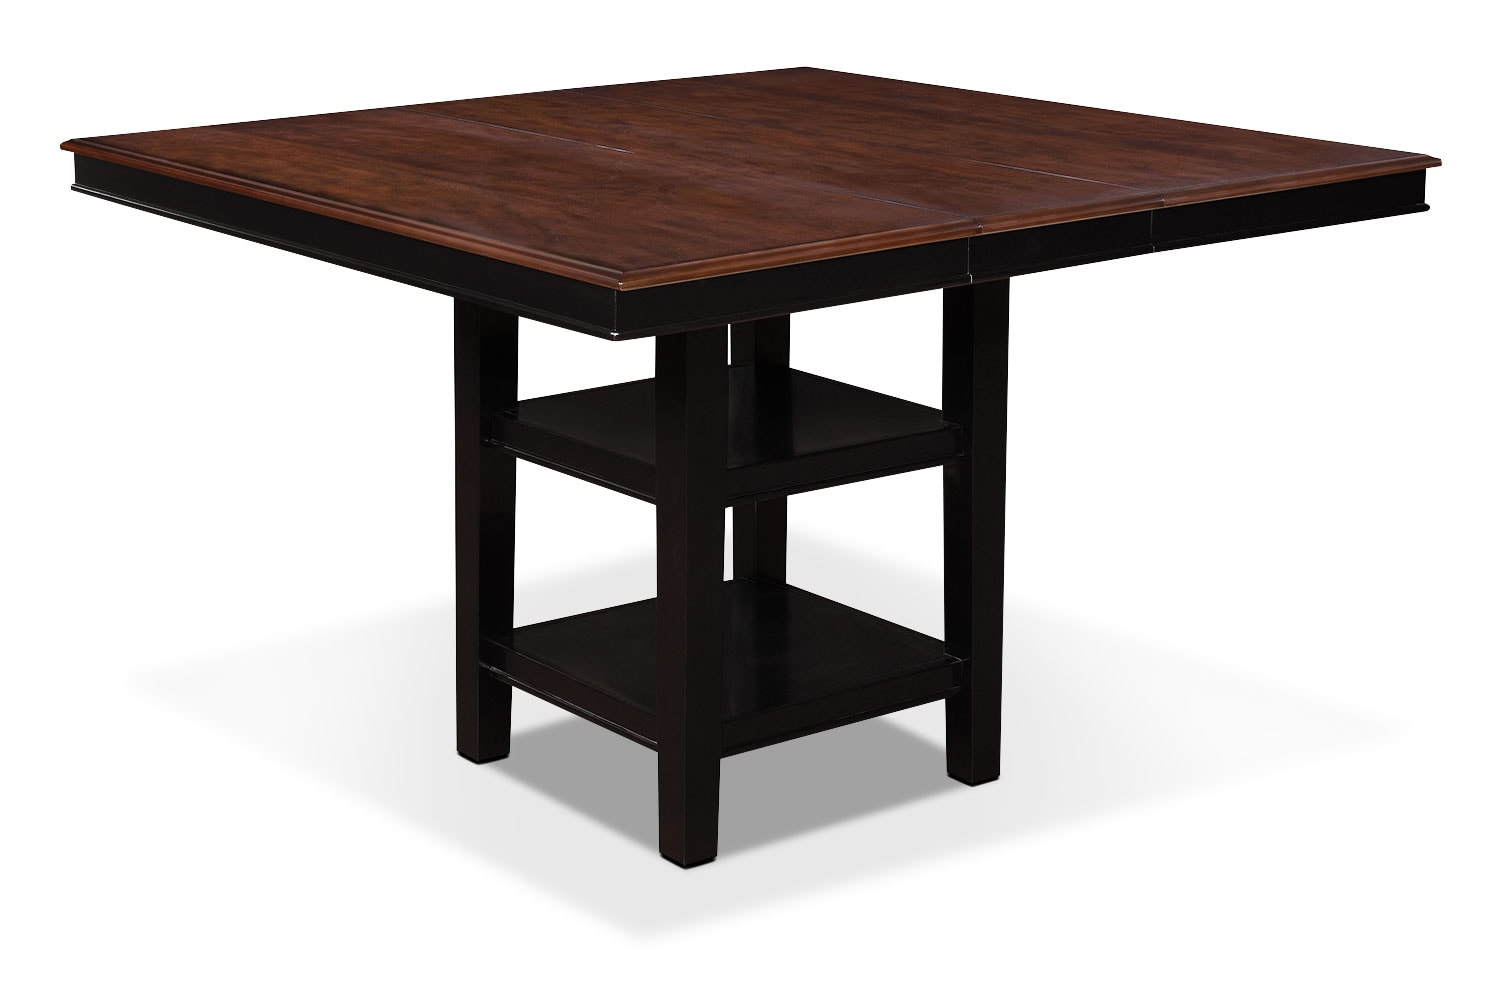 Nyla counter height dining table black and cherry for Counter height dining table